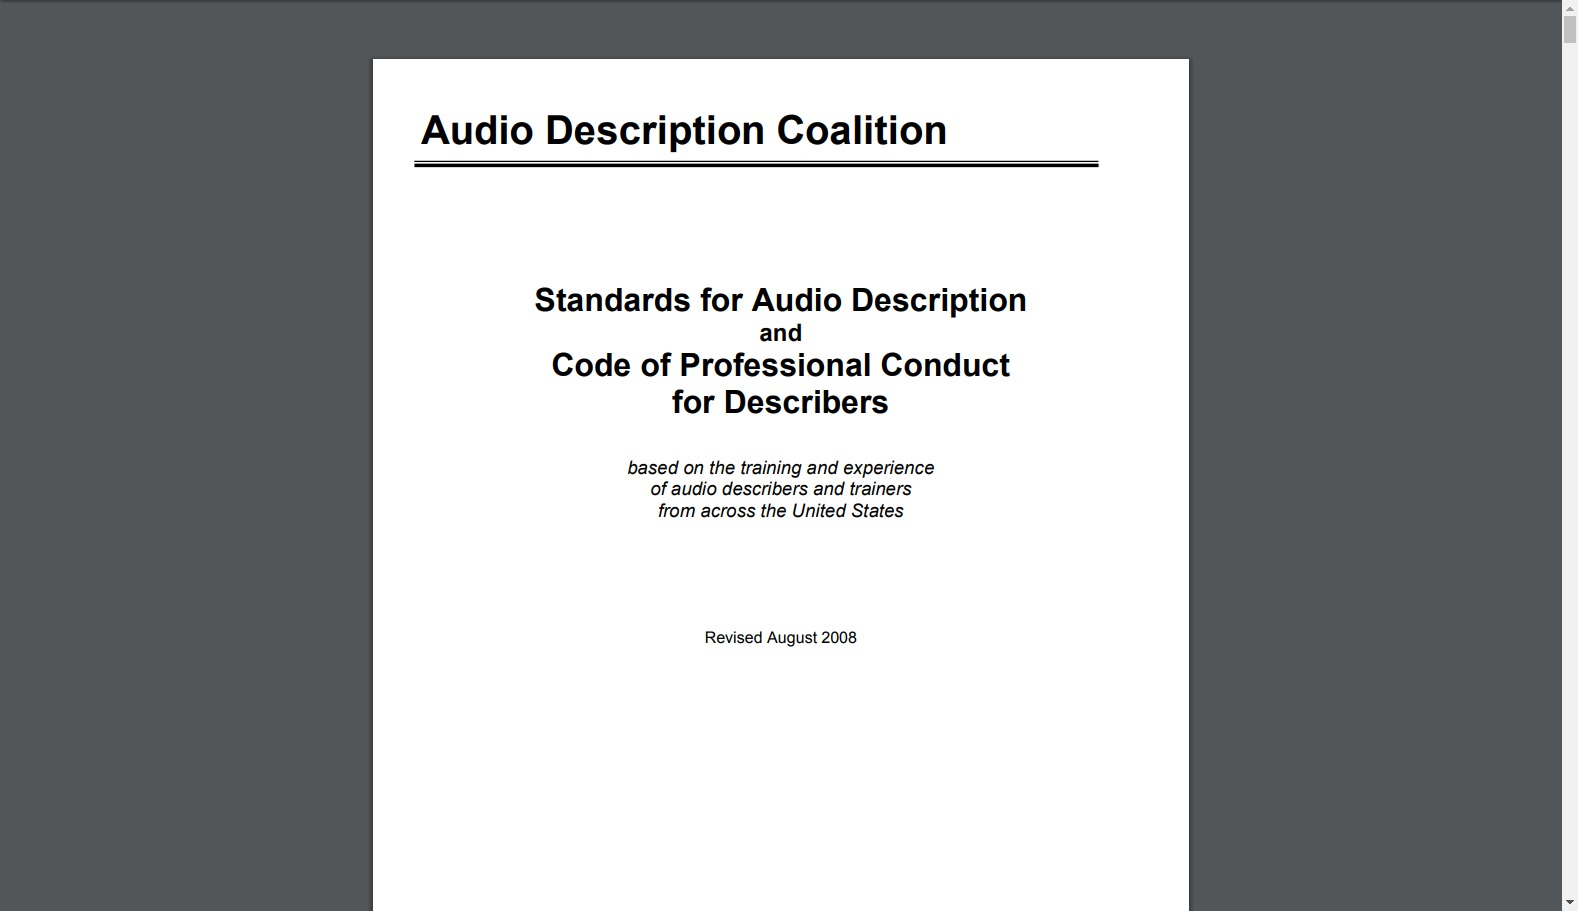 Standard for Audio Description and Code of Conduct for Describers